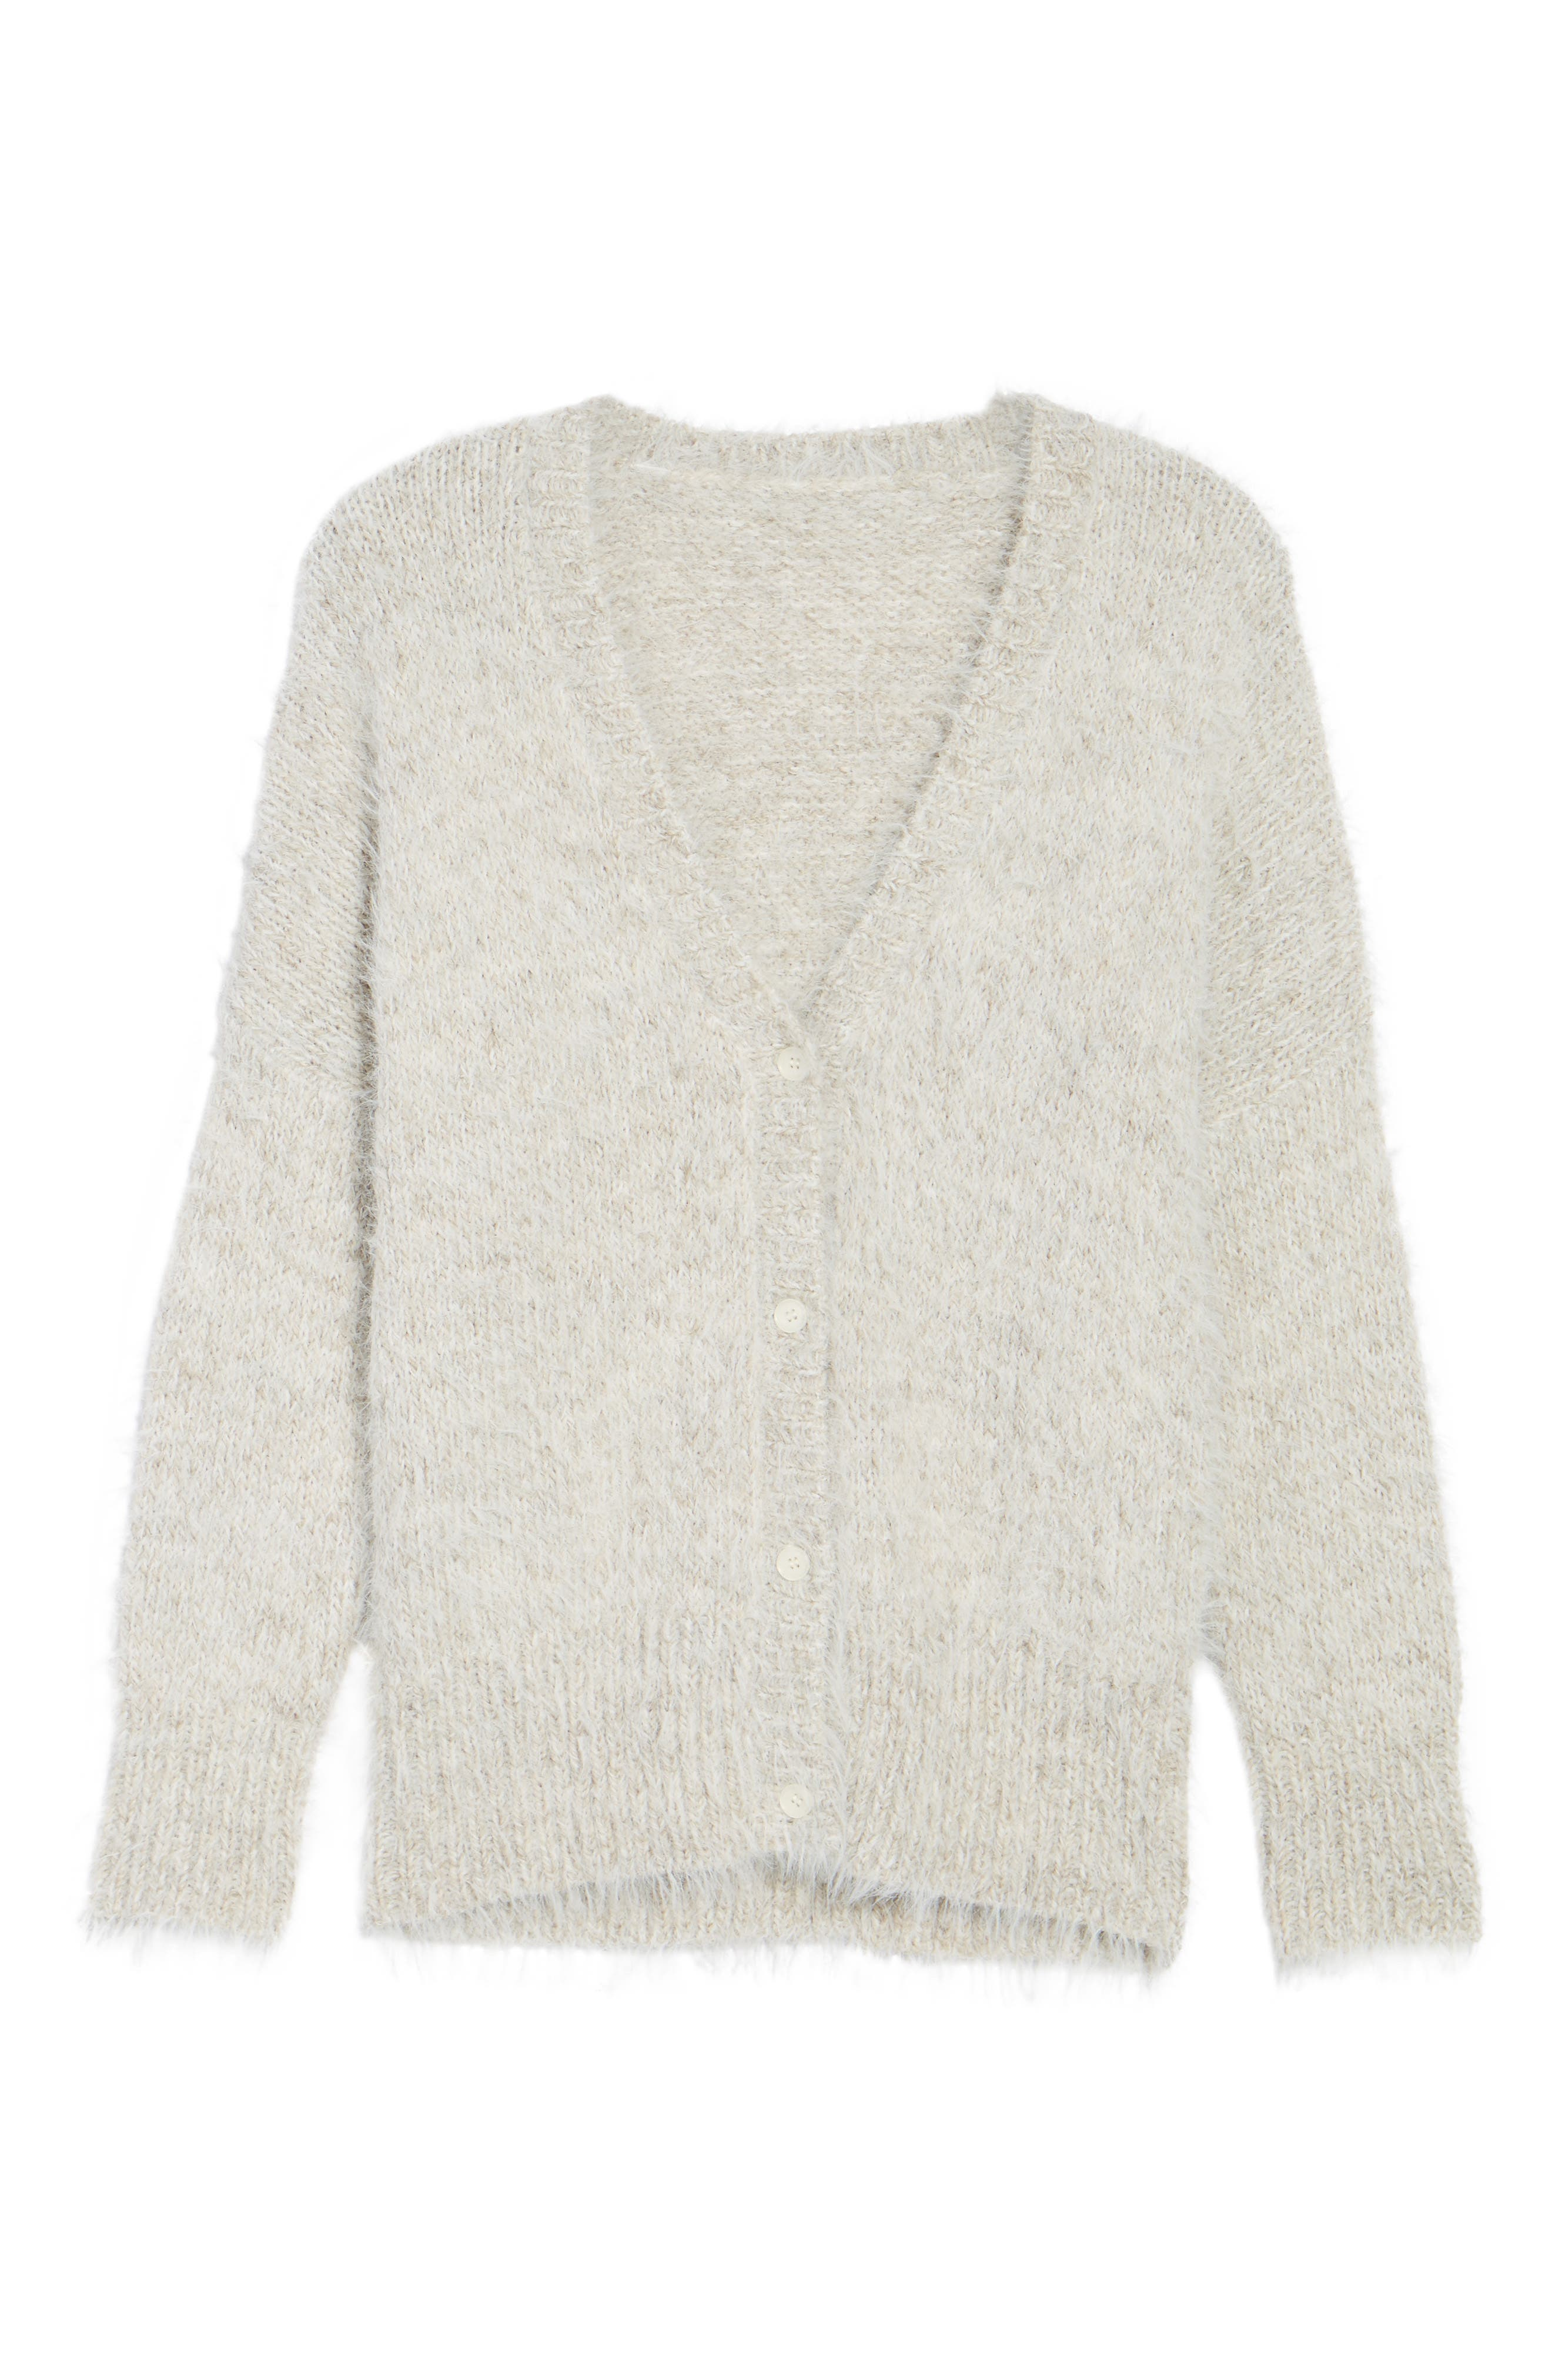 Fuzzy Cardigan,                             Alternate thumbnail 6, color,                             Grey Chateau